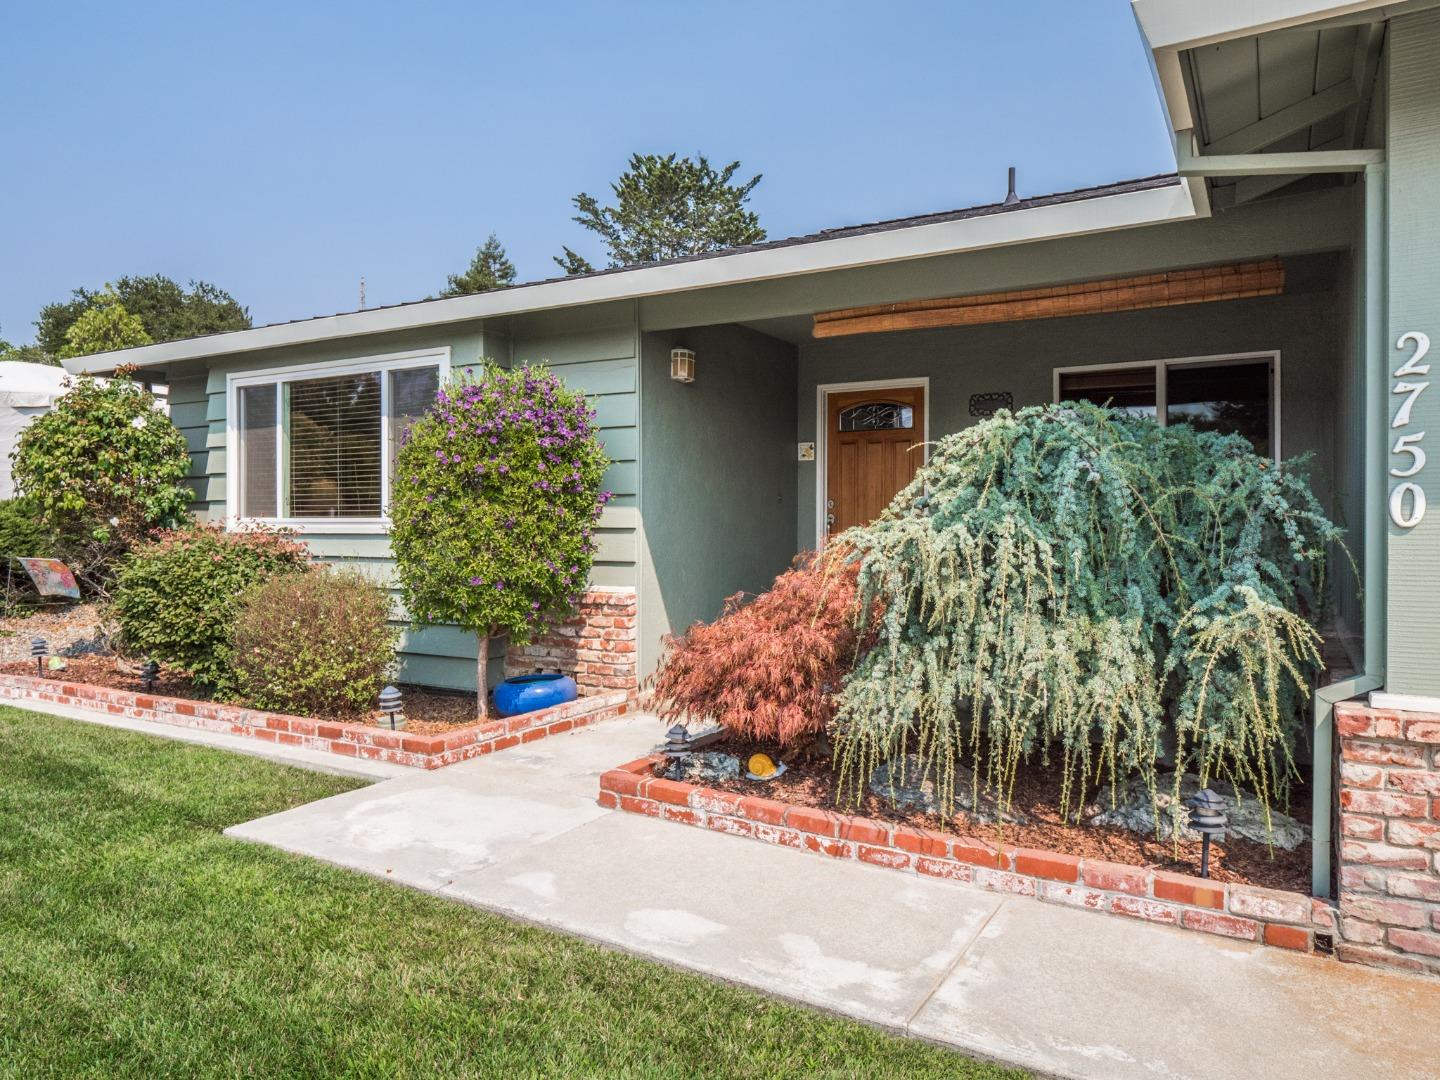 Let's call this immaculate single level, 3 bedroom, 2 bath home, The Cap-Soquel Beauty. As you are just a short walk to  Capitola's most popular Bakery, Fish, and Vegi shops, and groceries, or take about 5 minutes on that rusty bike, cruise right down the road to the famous Capitola Beach & Village, with all the fun it has to offer. So say.. you go inland from this home?  You are also very close to the cute Soquel Village, schools , and Hwy 1 for those who commute. I believe you will enjoy this clean well maintained  beautiful home, with its excellent exterior paint job, it's meticulous landscaping, front and back, and how it sits almost at the end of a quiet Cull-de-Sac. As you enter the home you are greeted with a widened hallway, Caned ceiling lights, Oak floors, a separate living room. Just down the hall is a more recent custom remodeled kitchen and a dining / family room combo. All the rooms are well maintained, comfortable in size. It's one to see! Check it out, Make it yours!